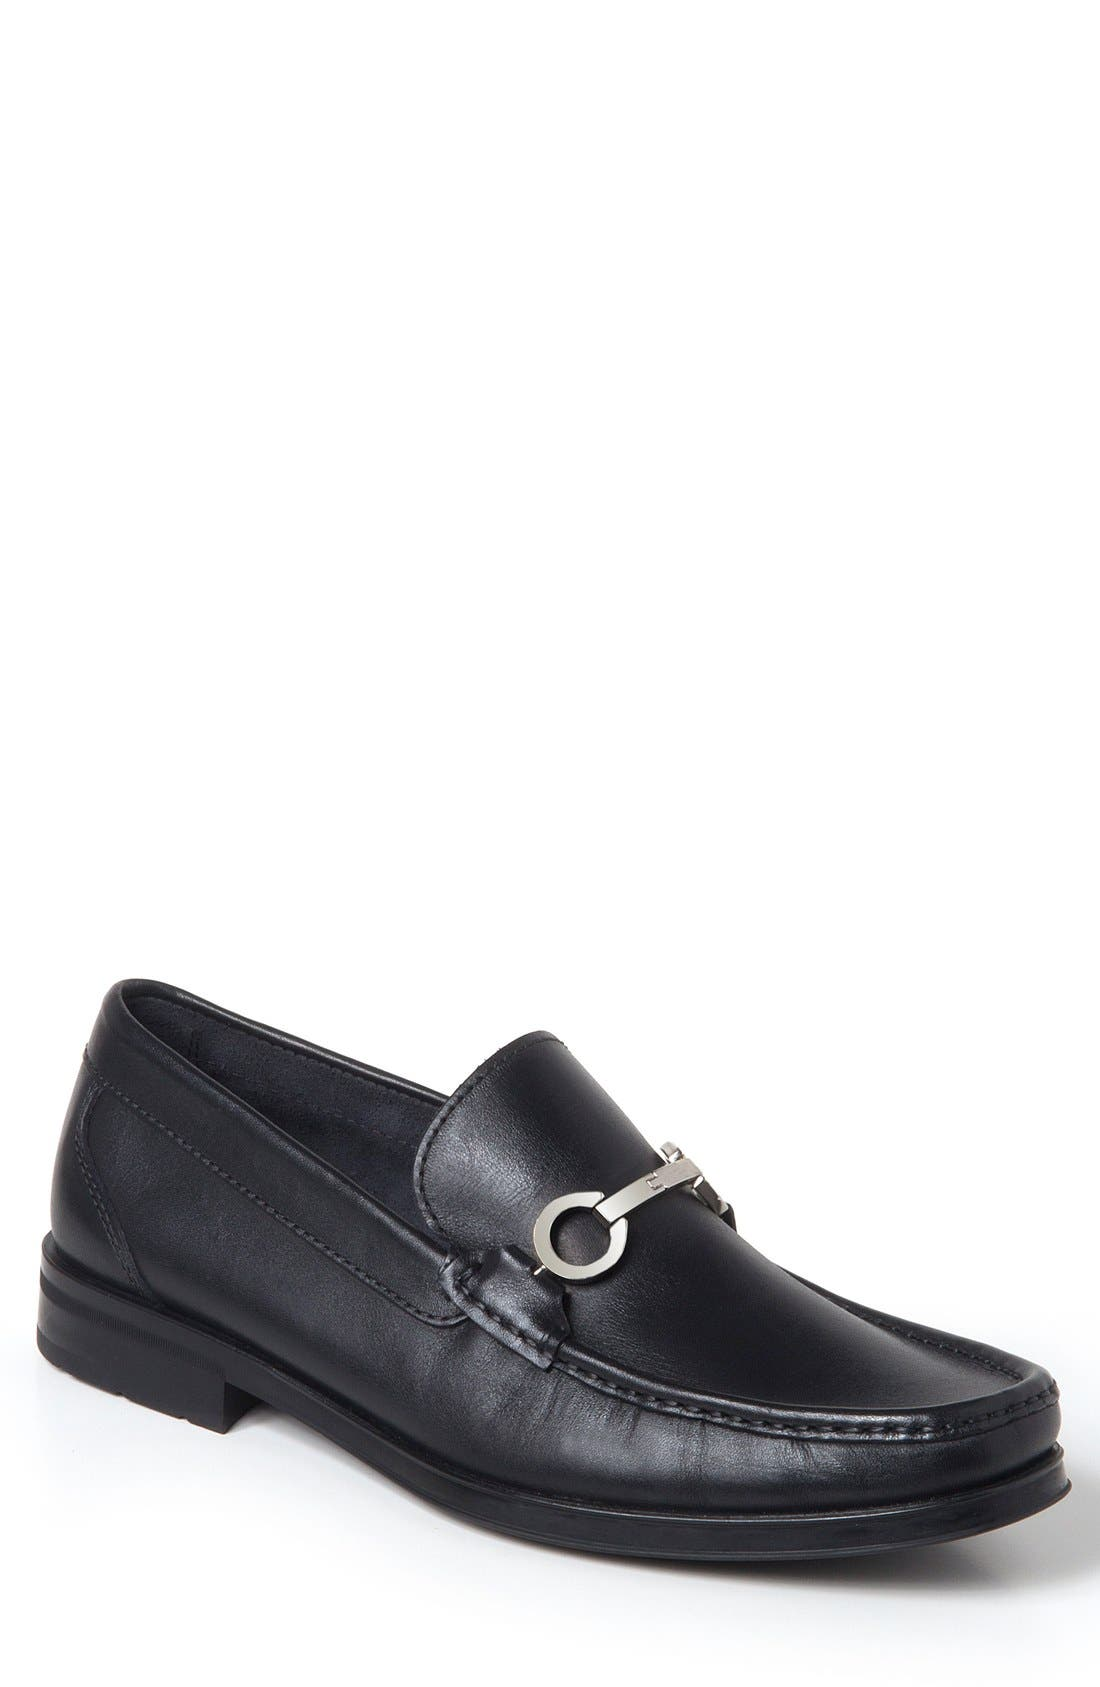 Genoa Bit Loafer,                         Main,                         color, BLACK LEATHER